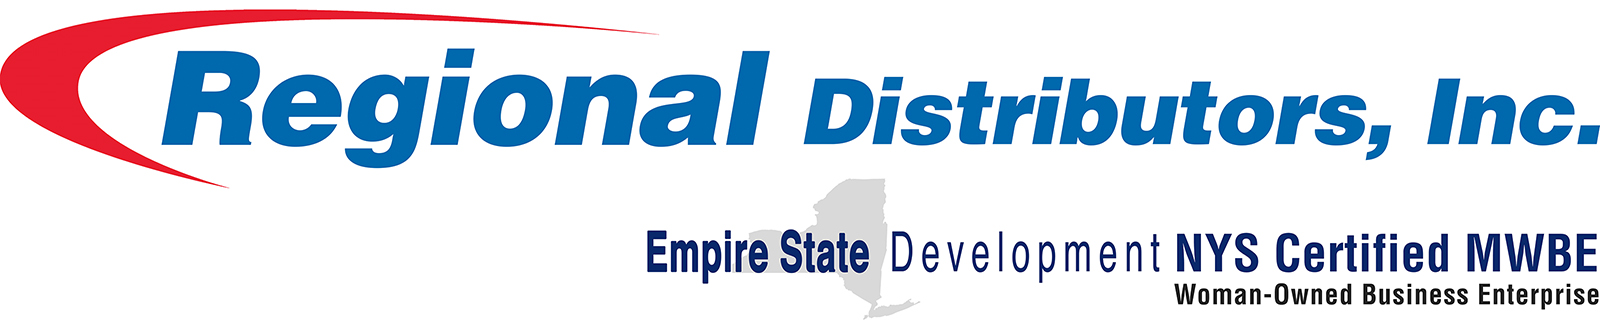 Regional Distributors, Inc. logo